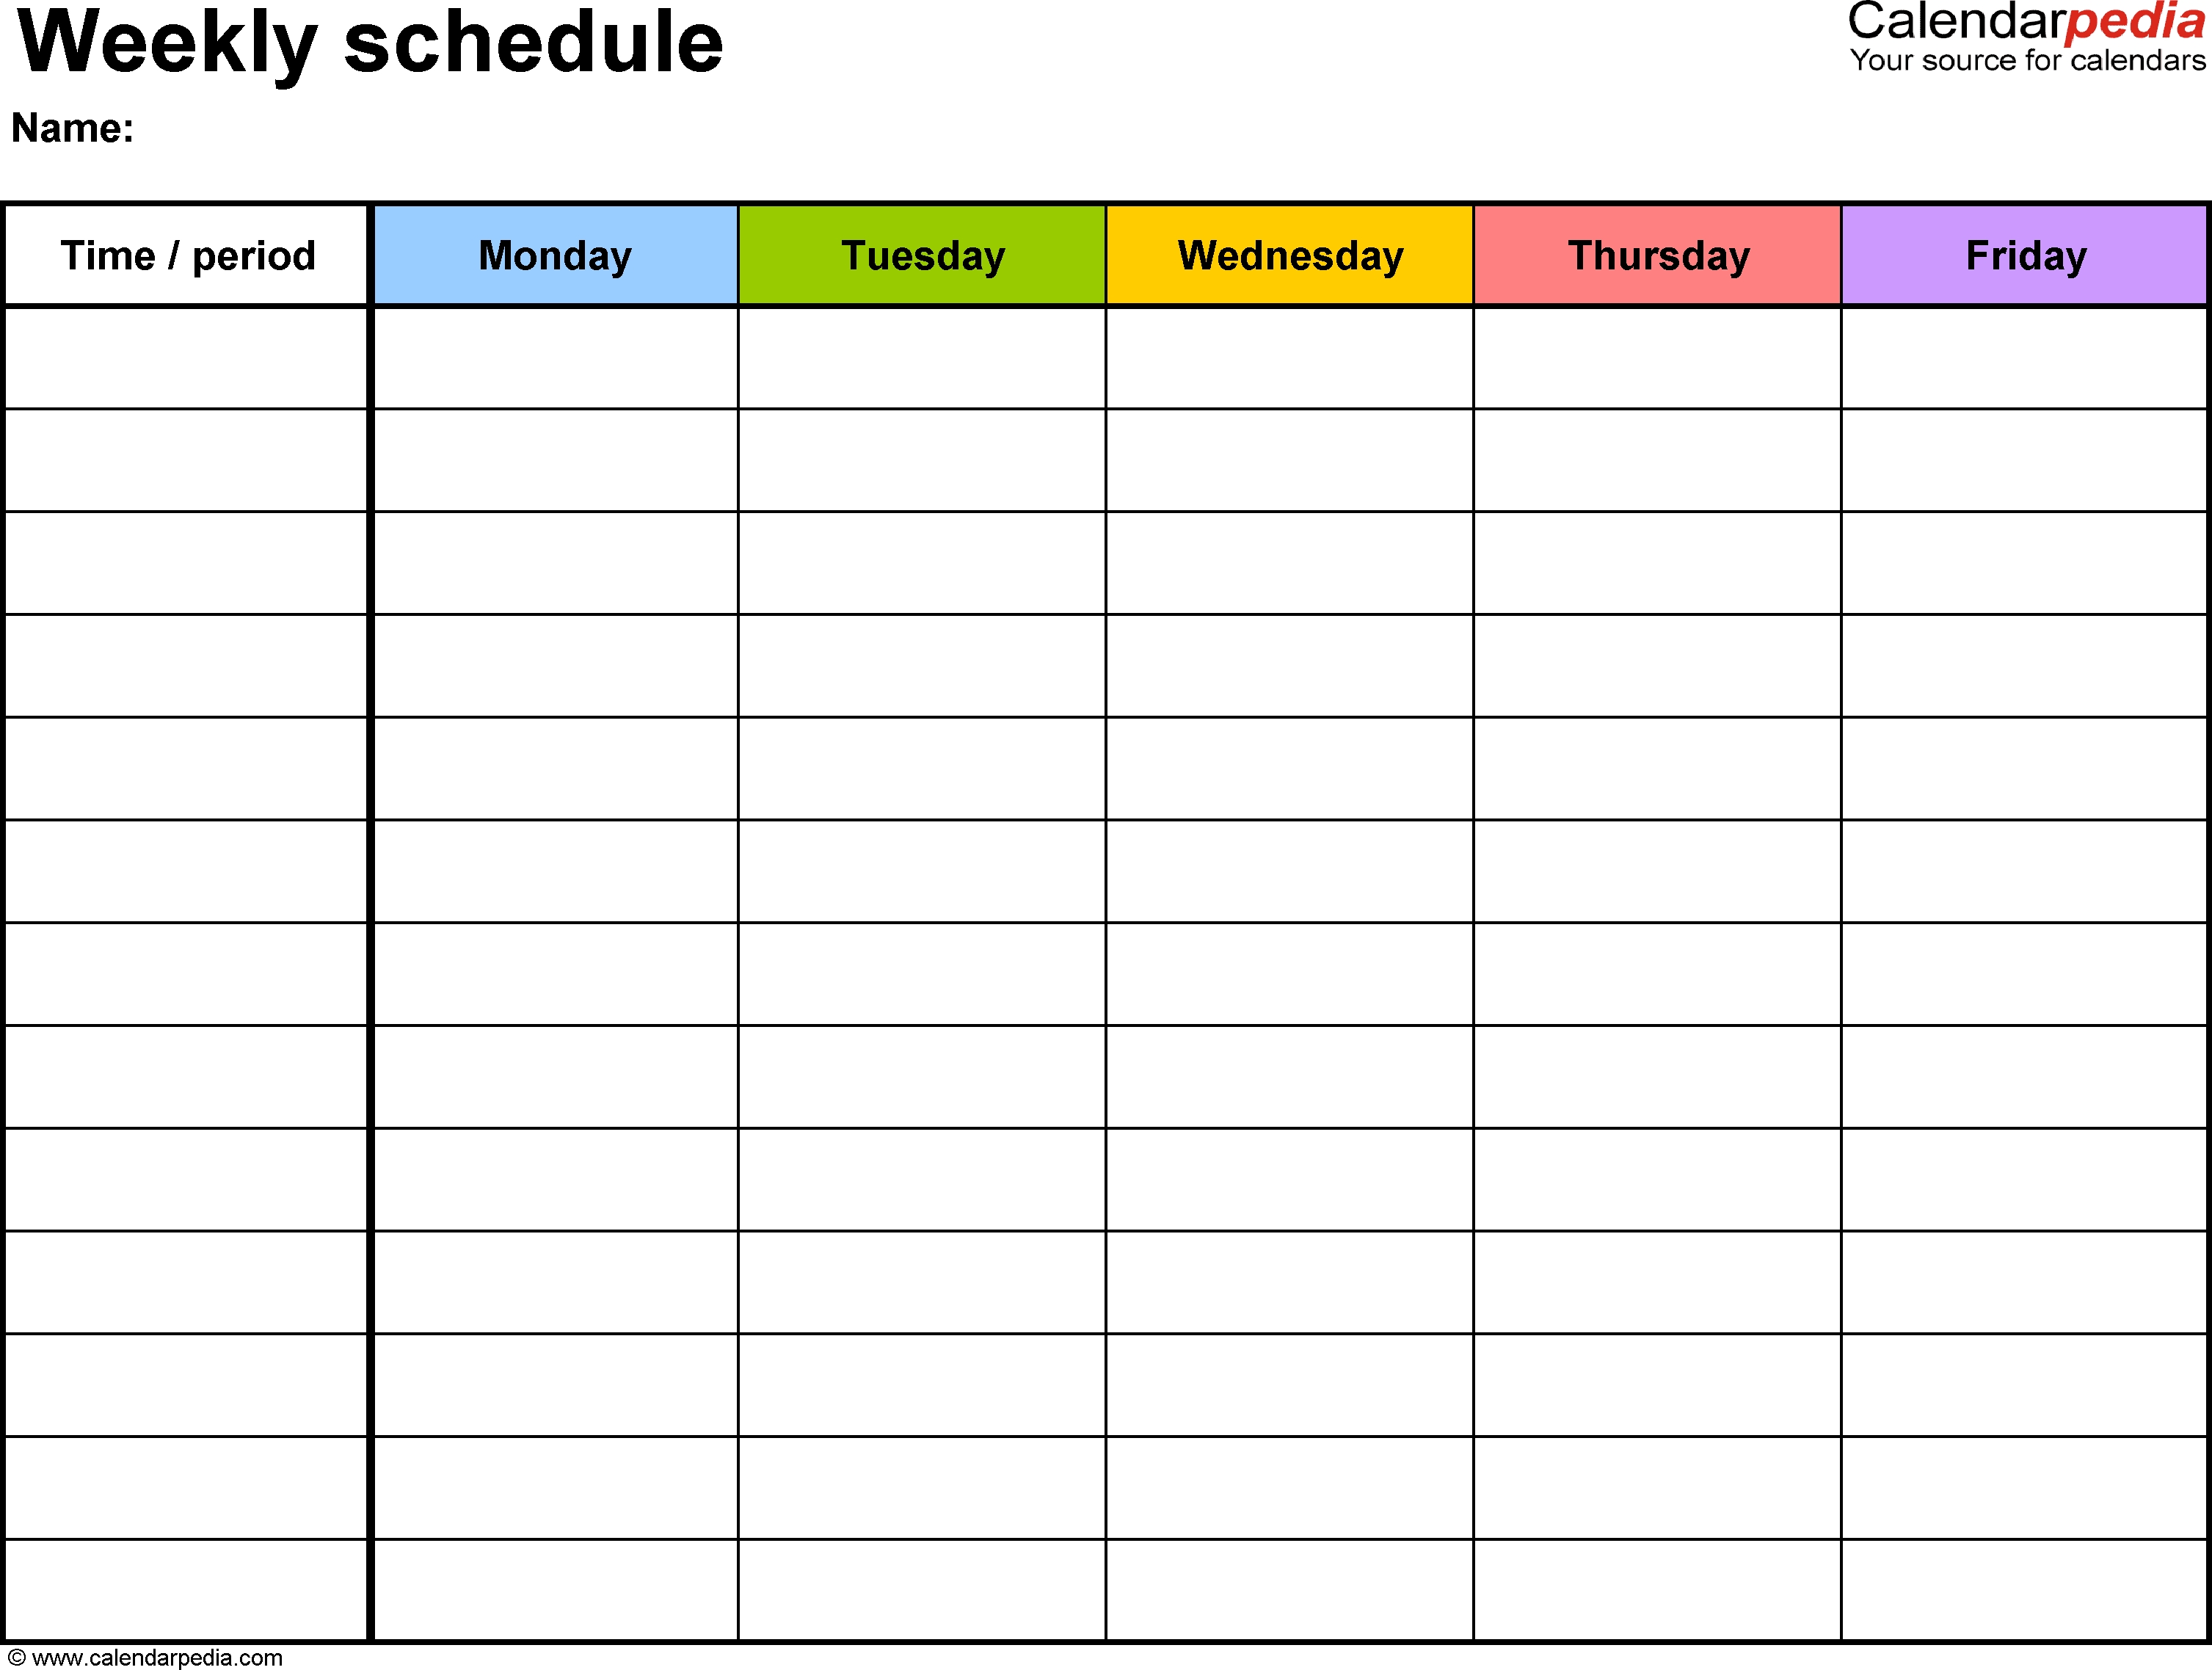 Free Weekly Schedule Templates For Word - 18 Templates intended for Printable Monday Through Friday Chart